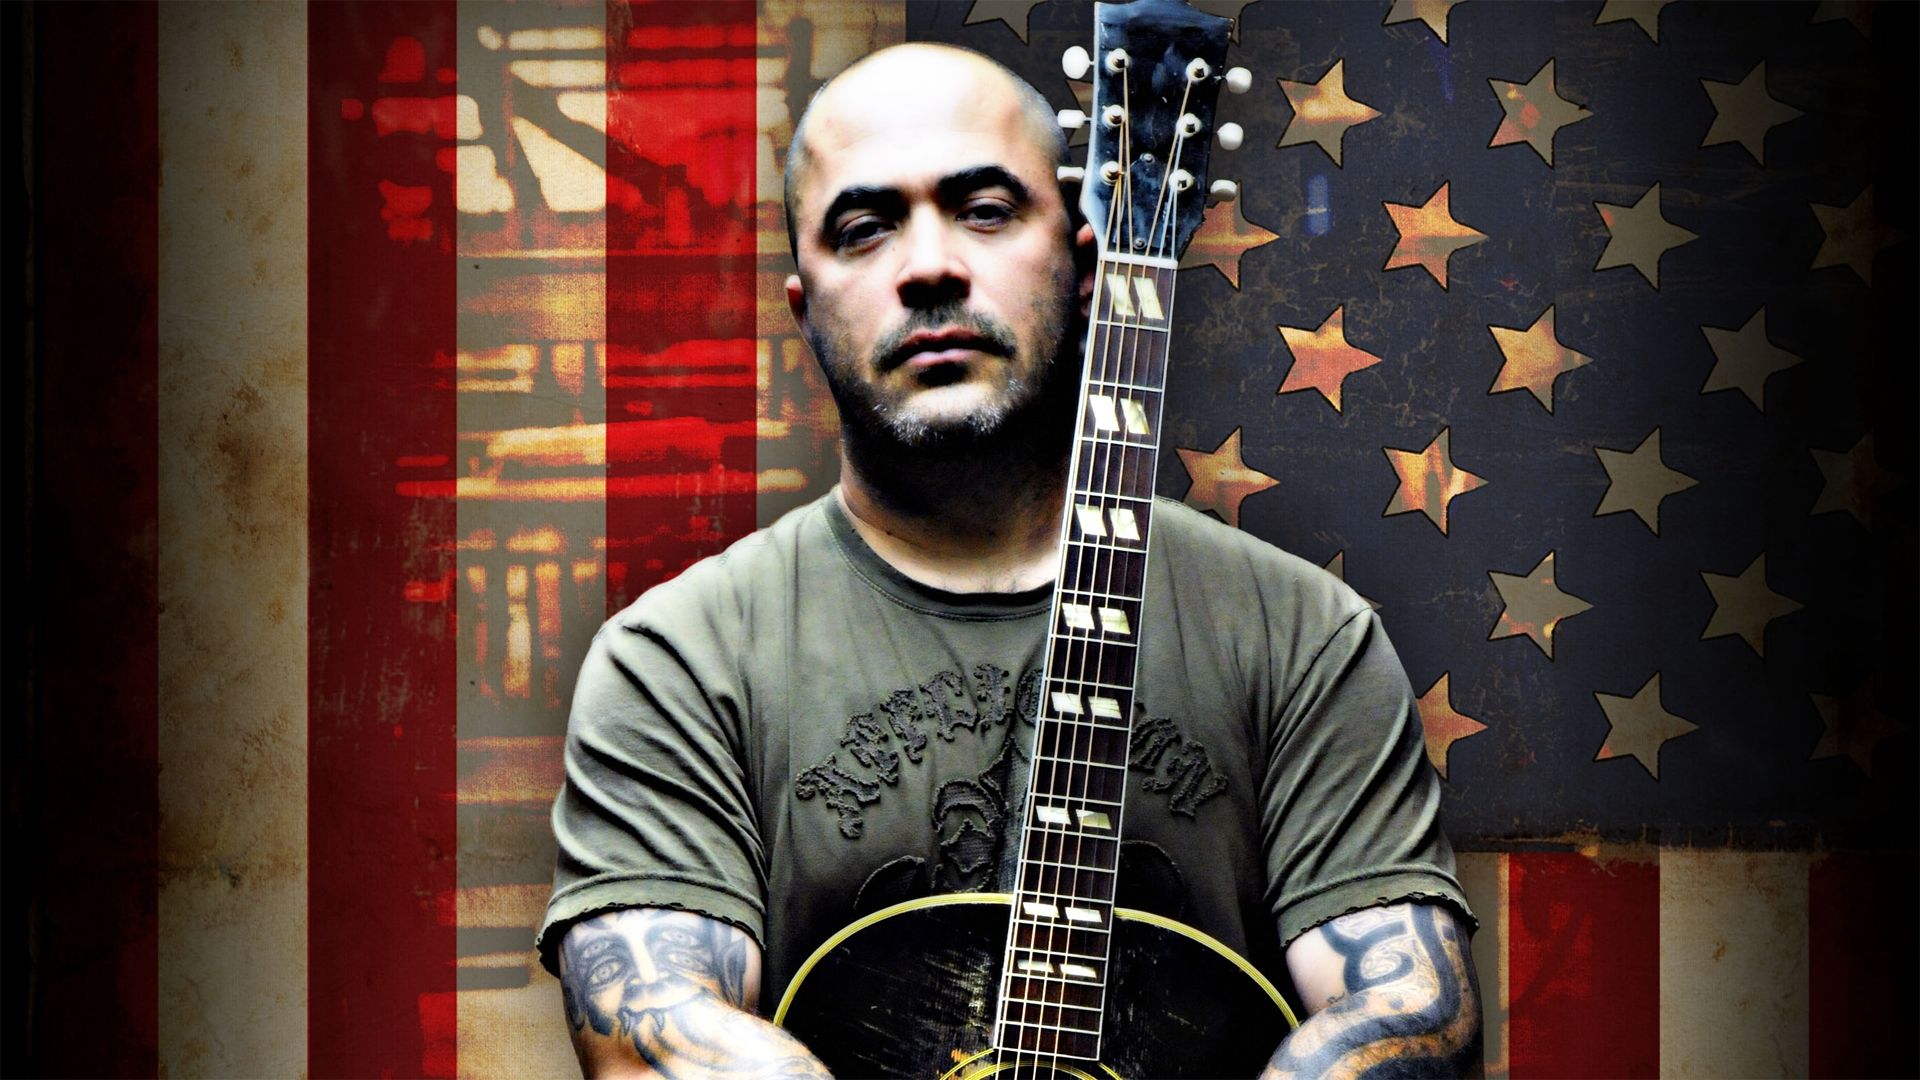 download wallpaper 1920x1080 aaron lewis guitar bald tattoo flag full hd 1080p hd background. Black Bedroom Furniture Sets. Home Design Ideas